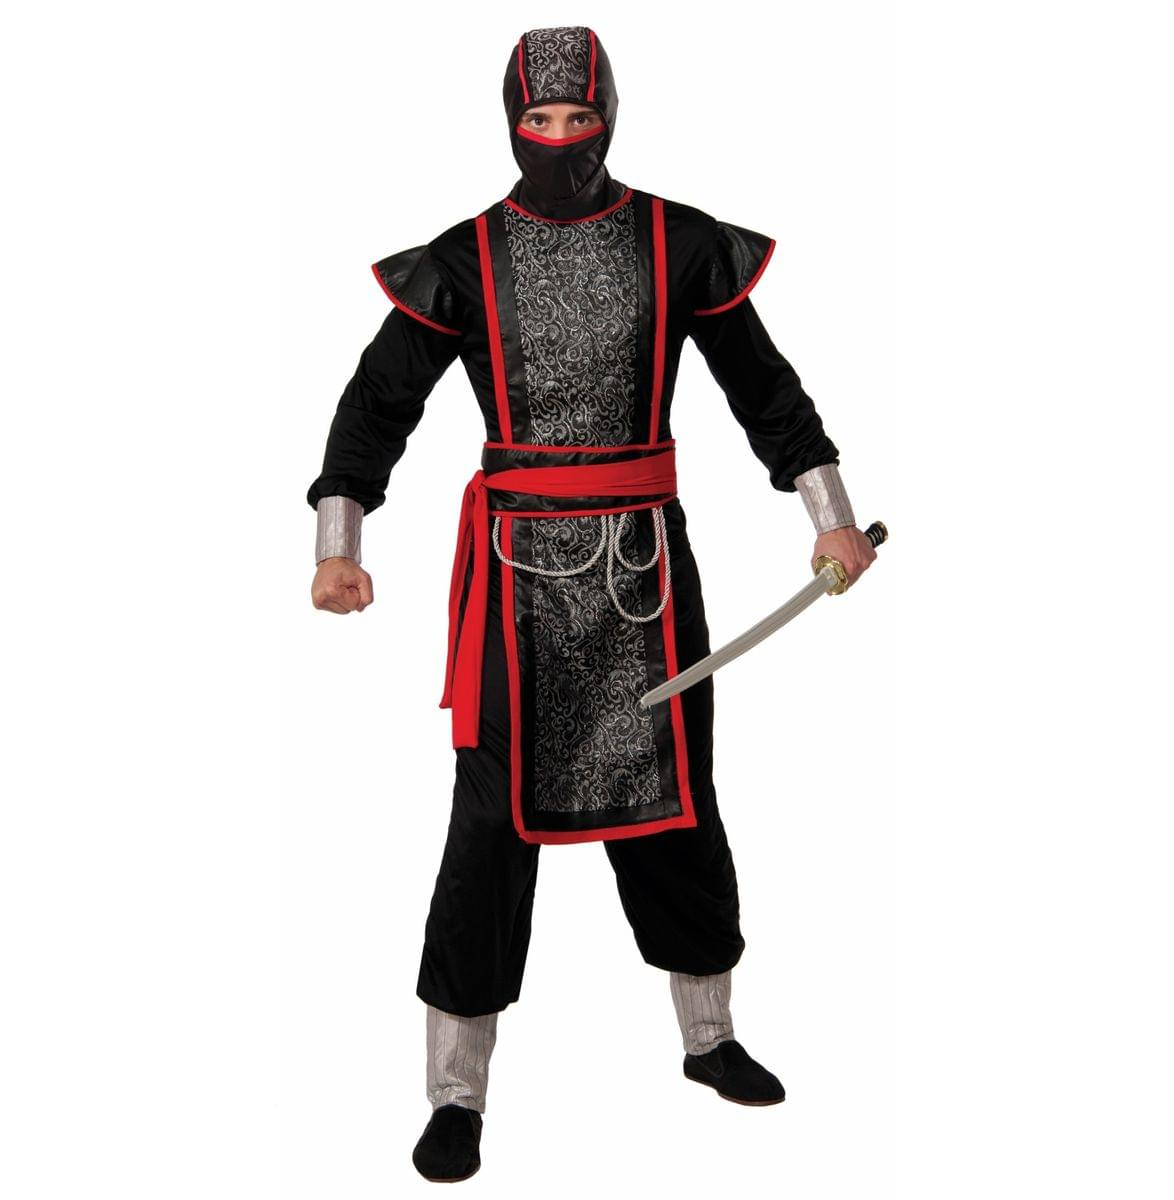 Hooded Ninja Master Adult Costume